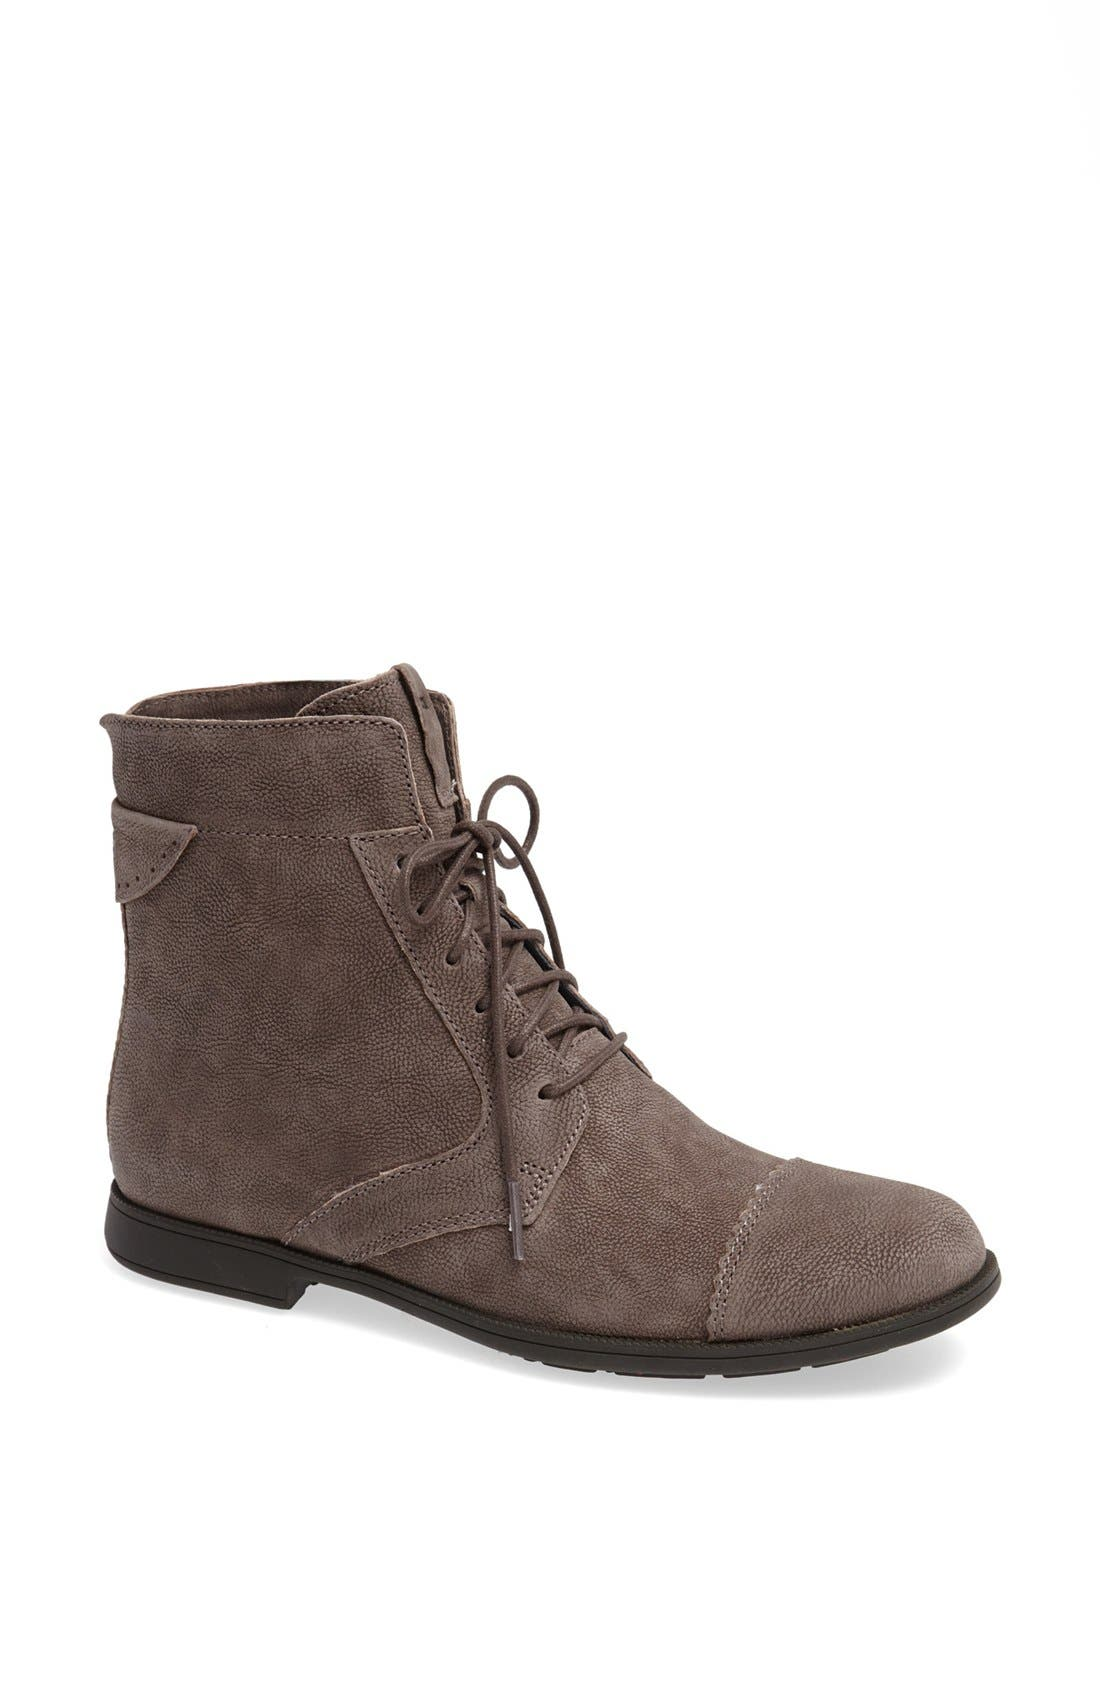 Alternate Image 1 Selected - Camper '1913' Leather Ankle Bootie